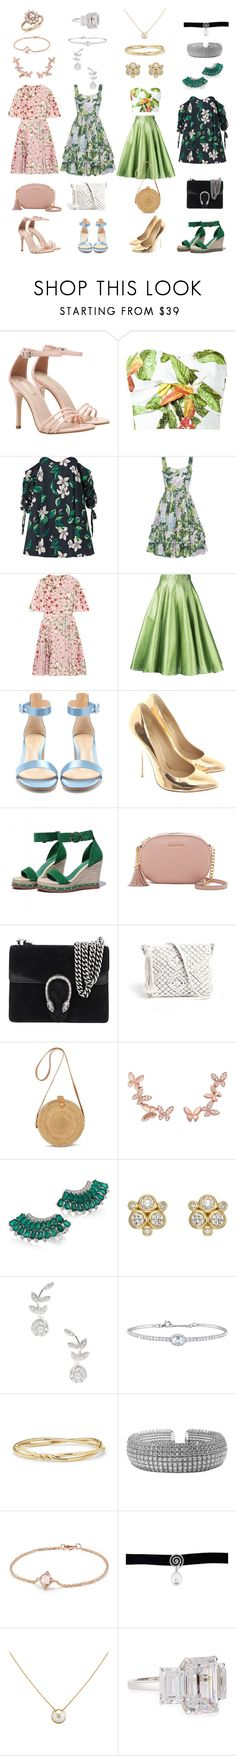 """Tell Me That You Love Me Too"" by kathrina1yana2jemma3cloe4 ❤ liked on Polyvore featuring Isolda, Caroline Constas, Peter Pilotto, Valentino, Bambah, Gianvito Rossi, Giuseppe Zanotti, MICHAEL Michael Kors, Gucci and Anyallerie"